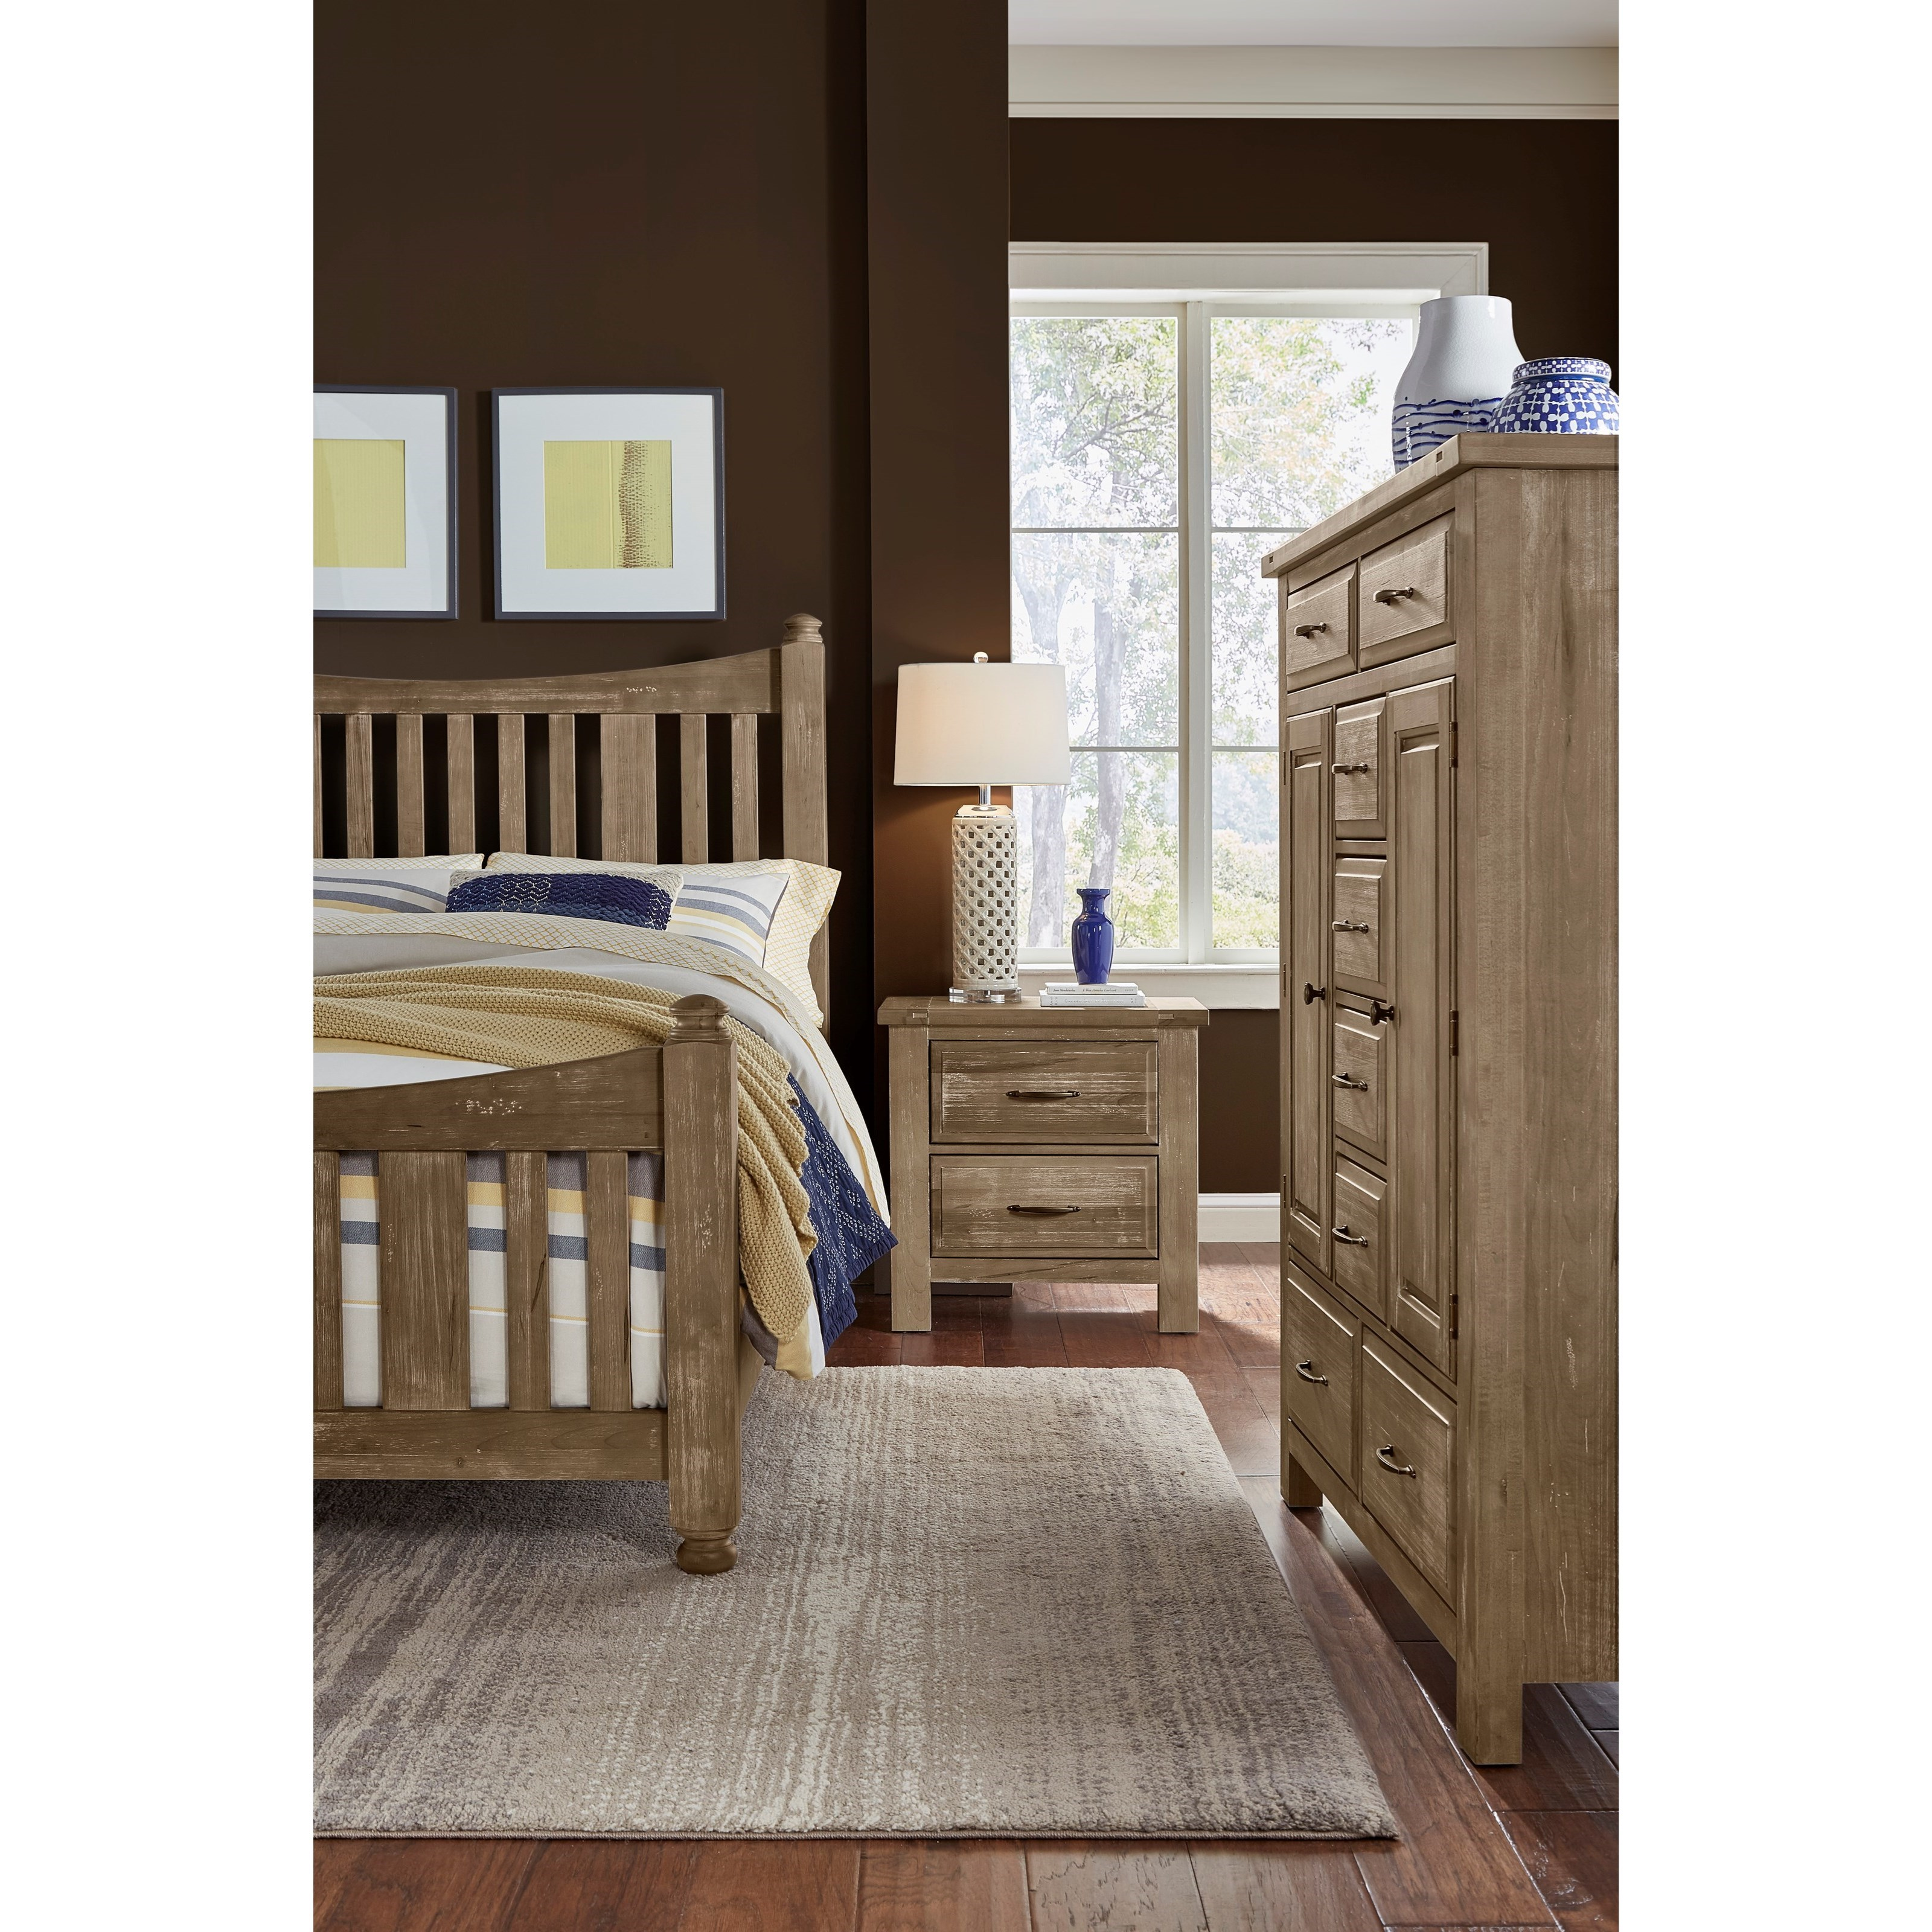 Maple Road King Bedroom Group by Artisan & Post at Northeast Factory Direct